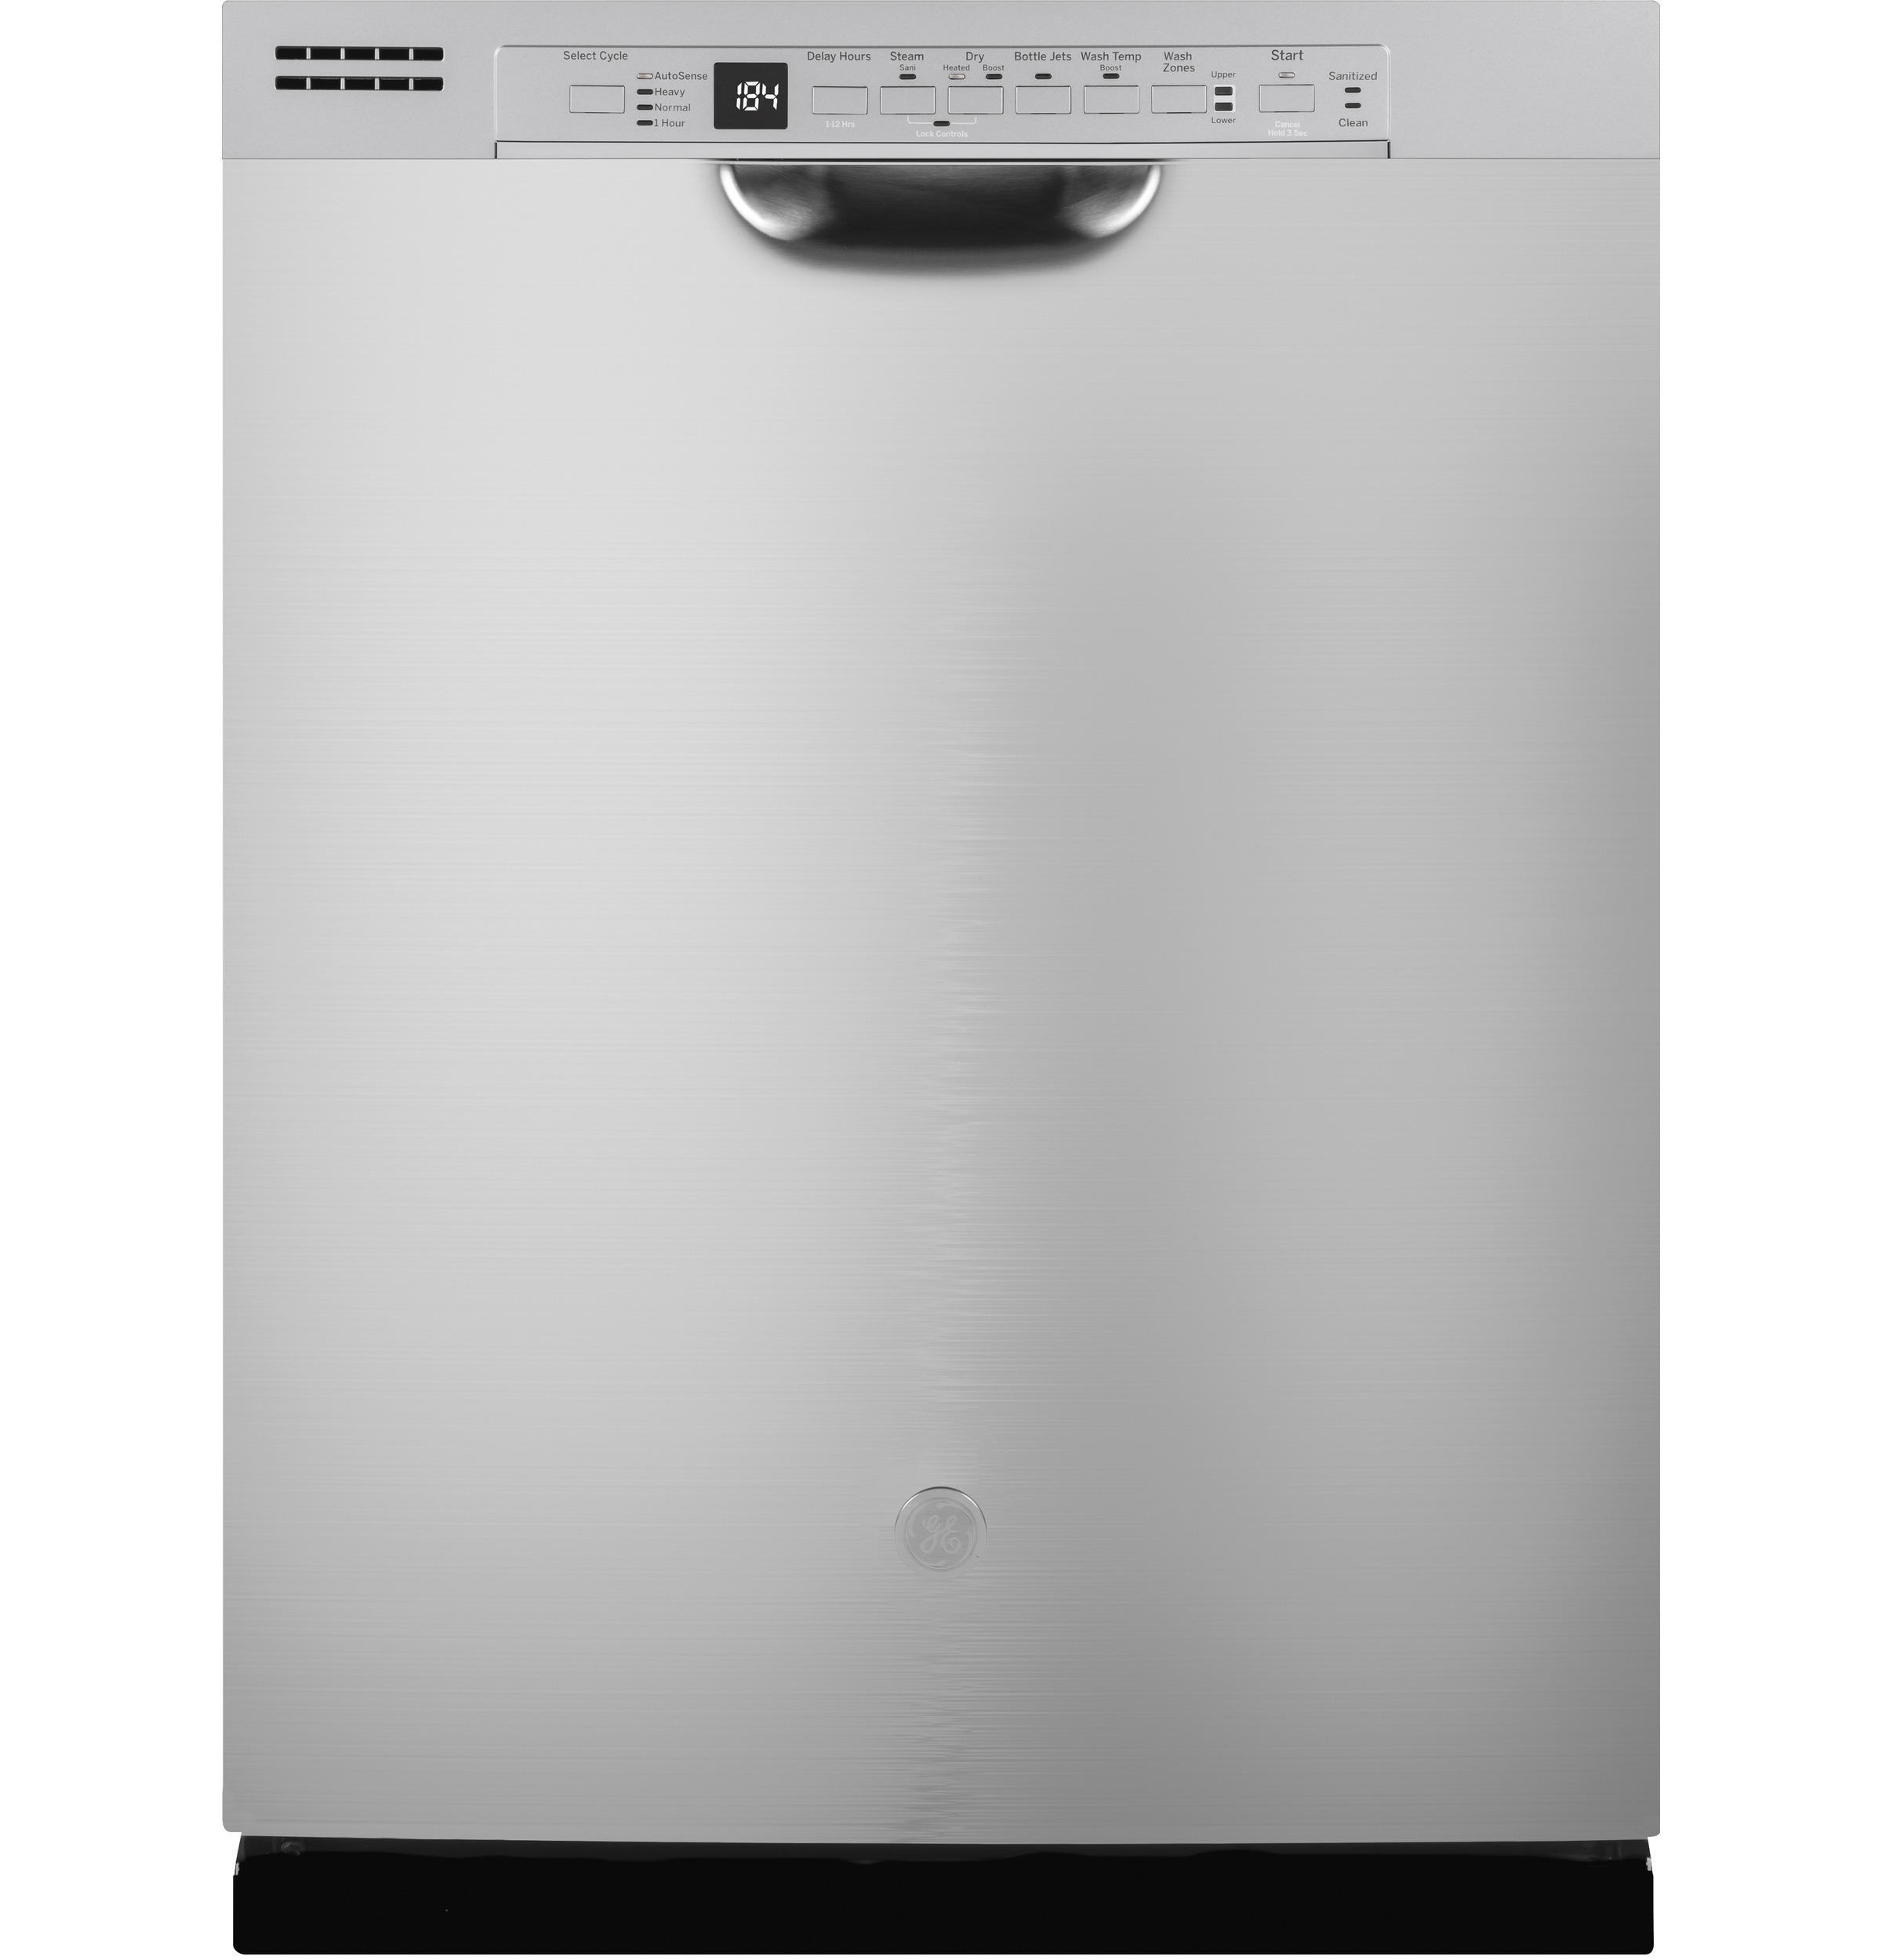 GE GE® Front Control with Plastic Interior Dishwasher with Sanitize Cycle & Dry Boost